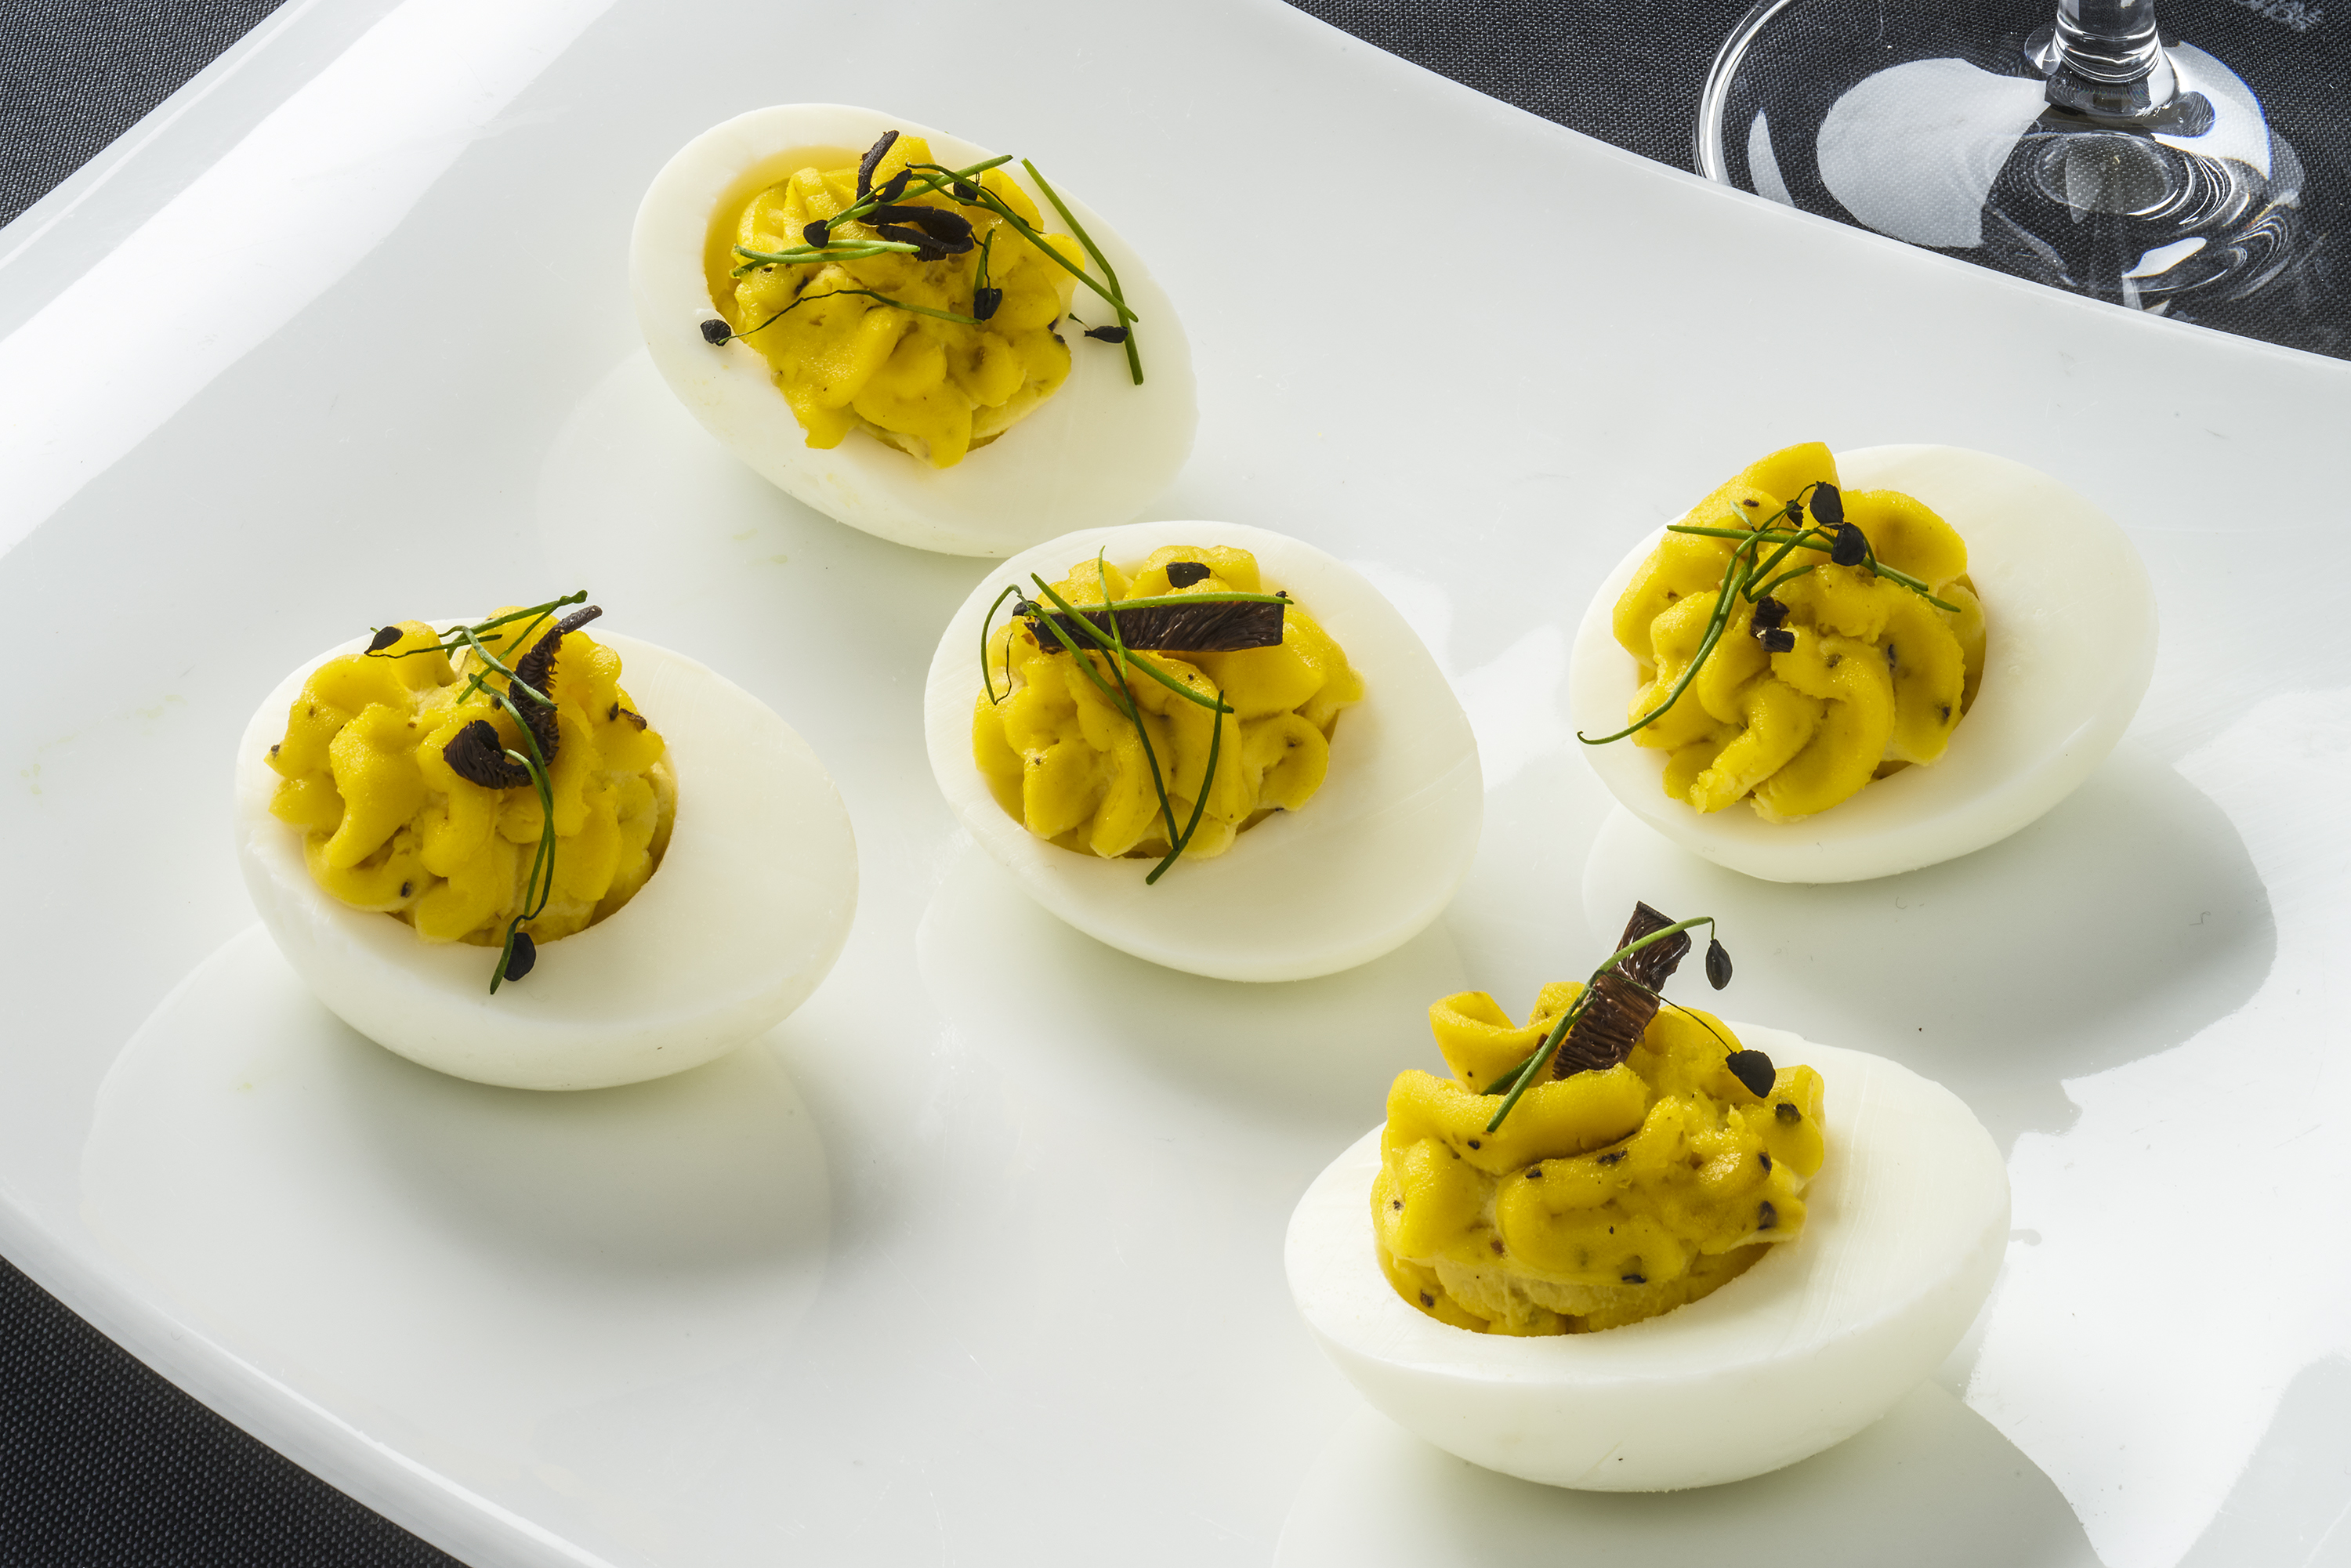 Appetizer - Deviled Eggs